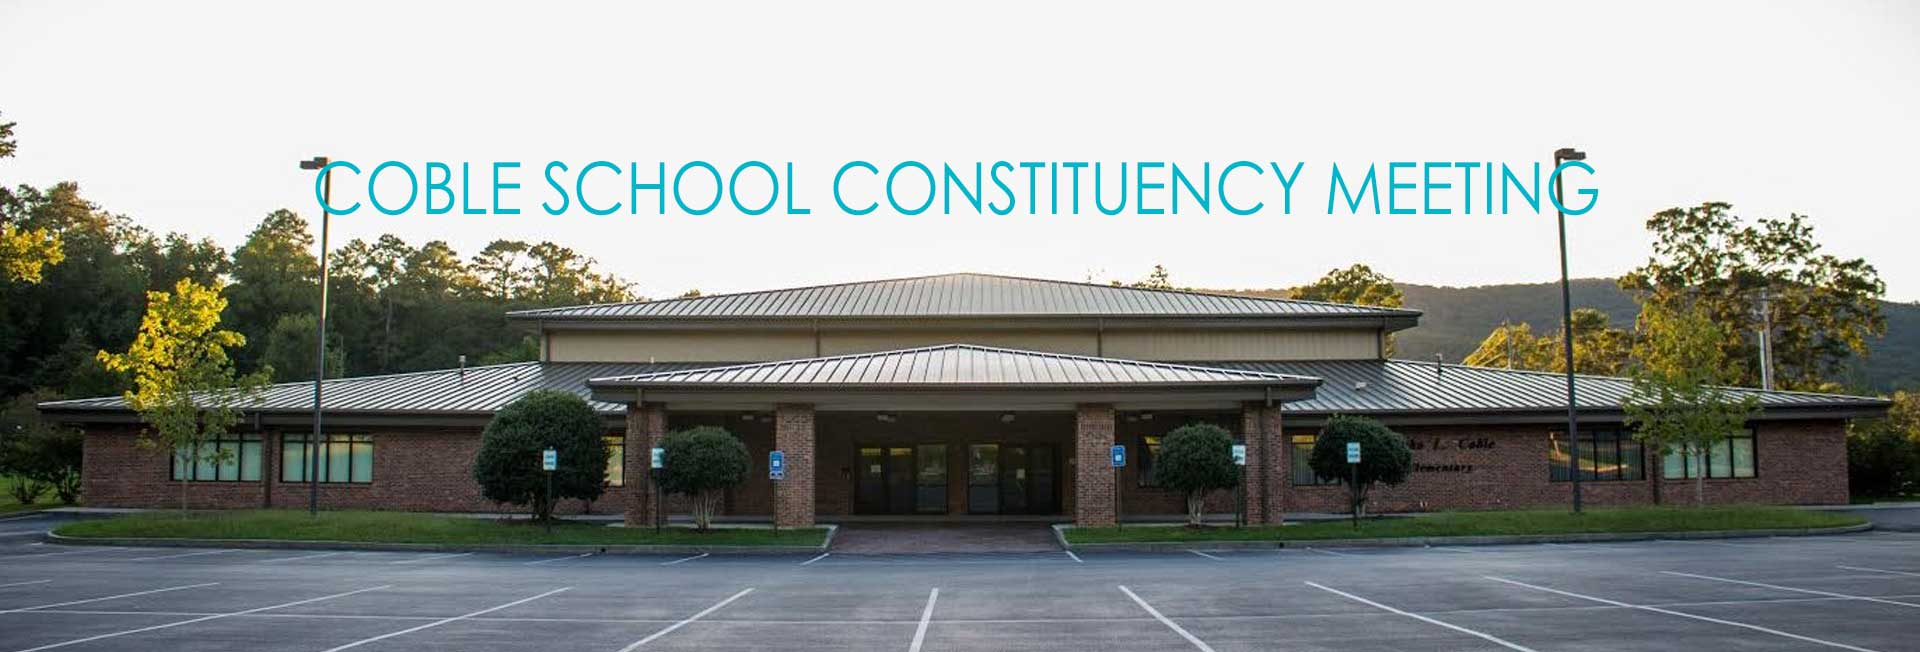 Coble School constituency meeting will be rescheduled for the future